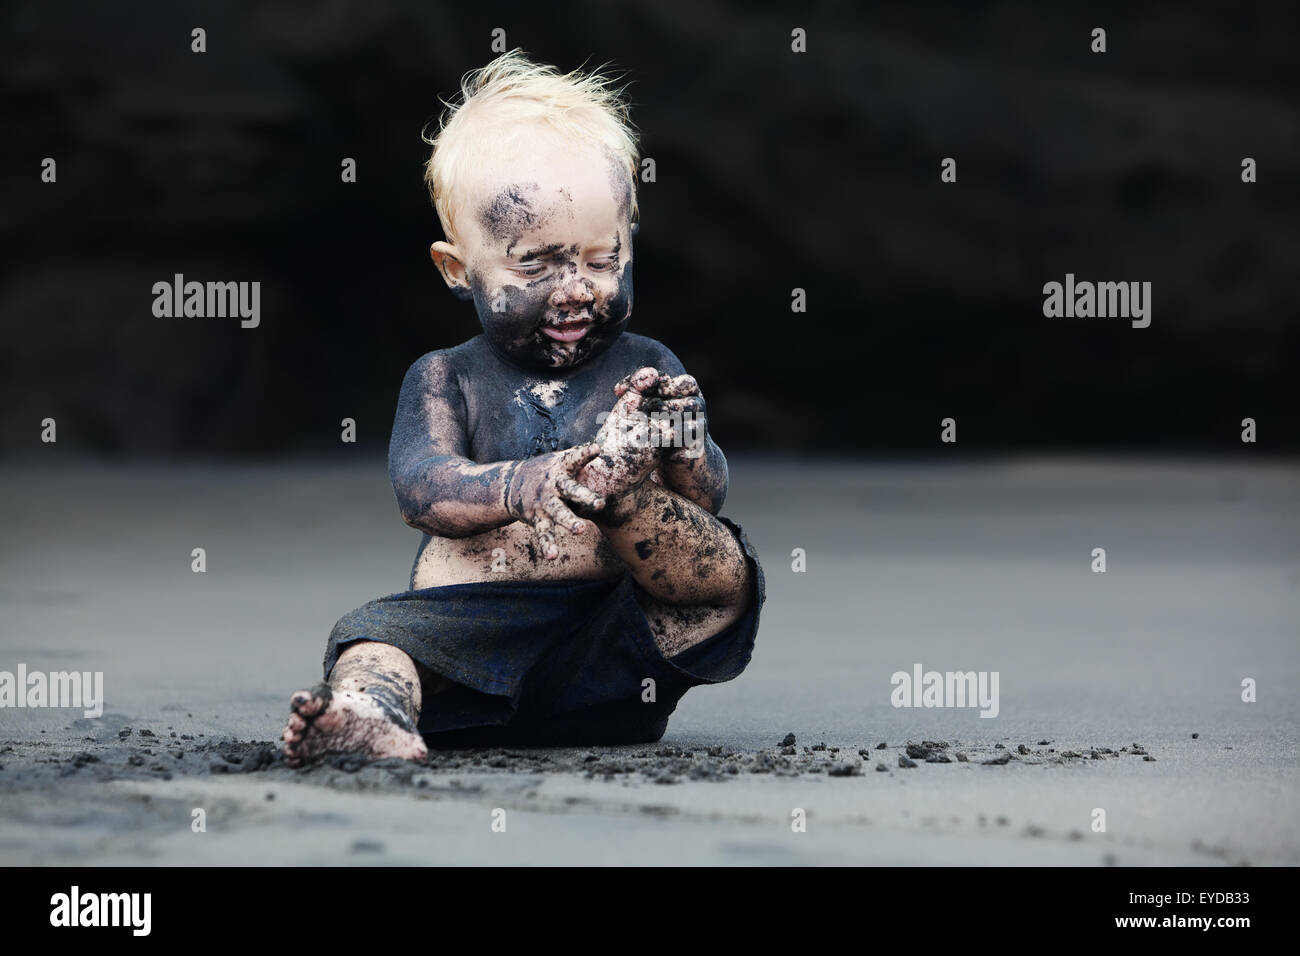 Funny portrait of smiling child with dirty face sitting and playing with fun on black sand sea beach before swimming - Stock Image